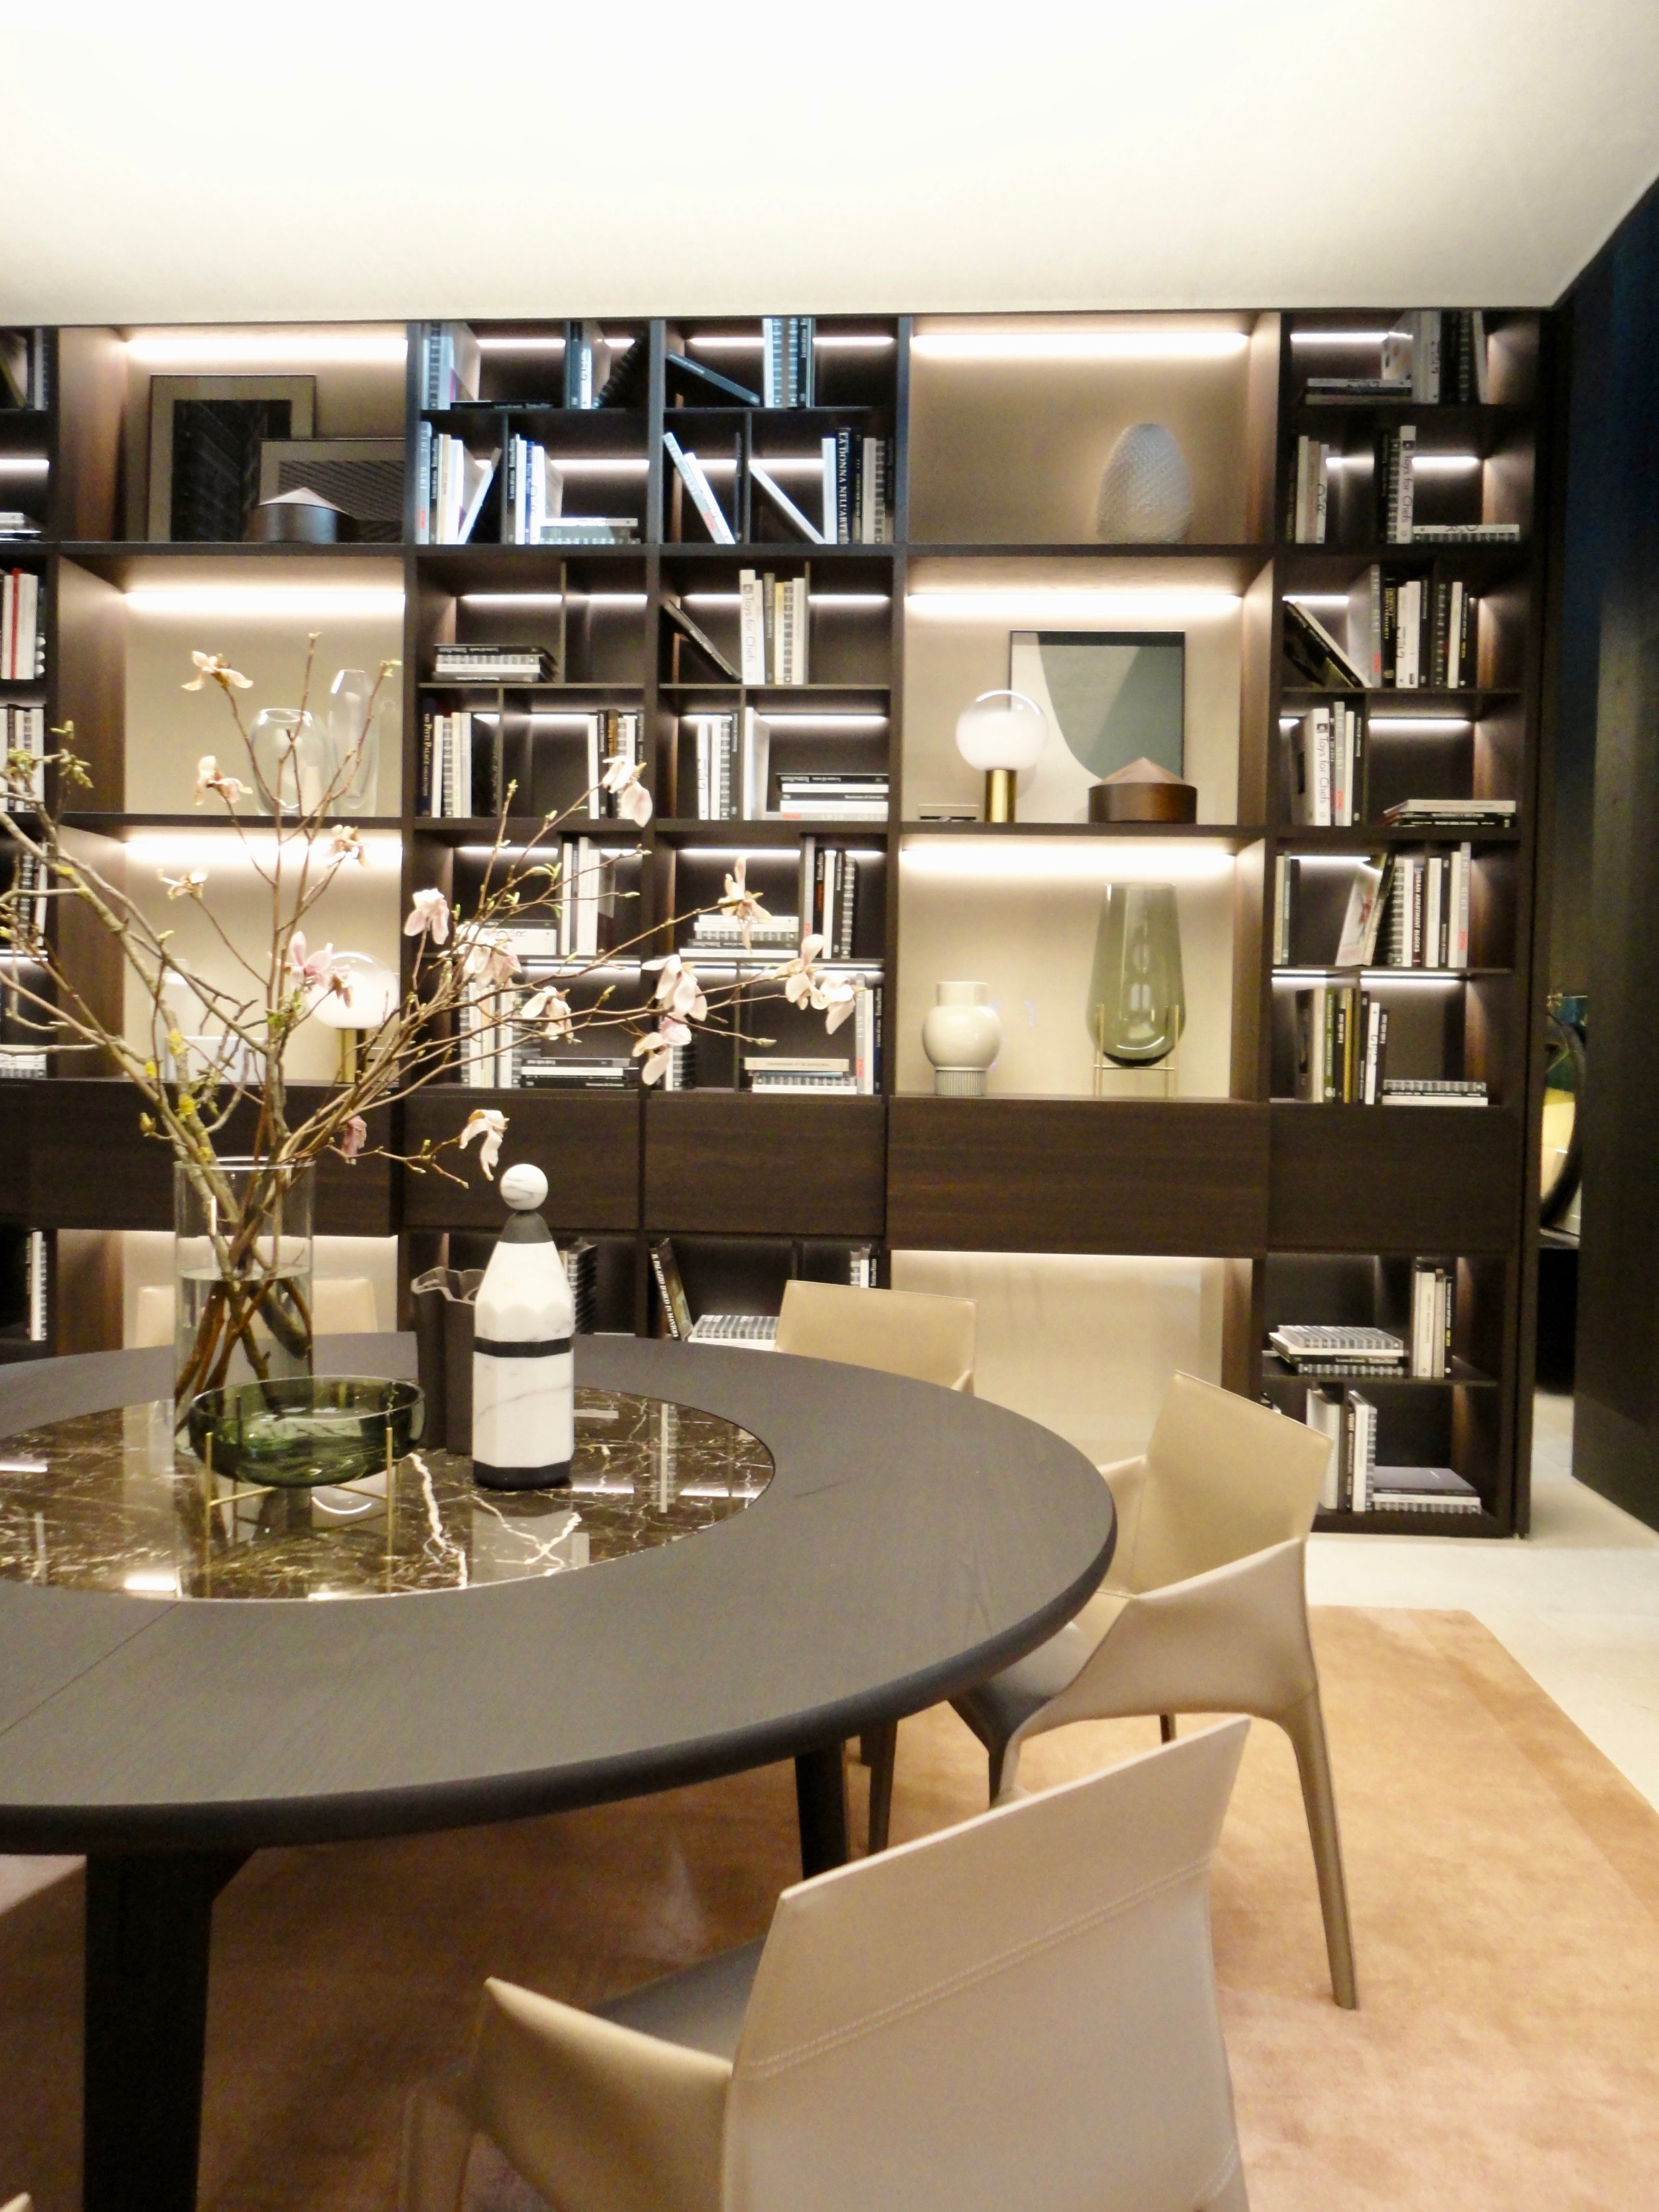 New 'Home Hotel' table on display with inset stone lazy susan